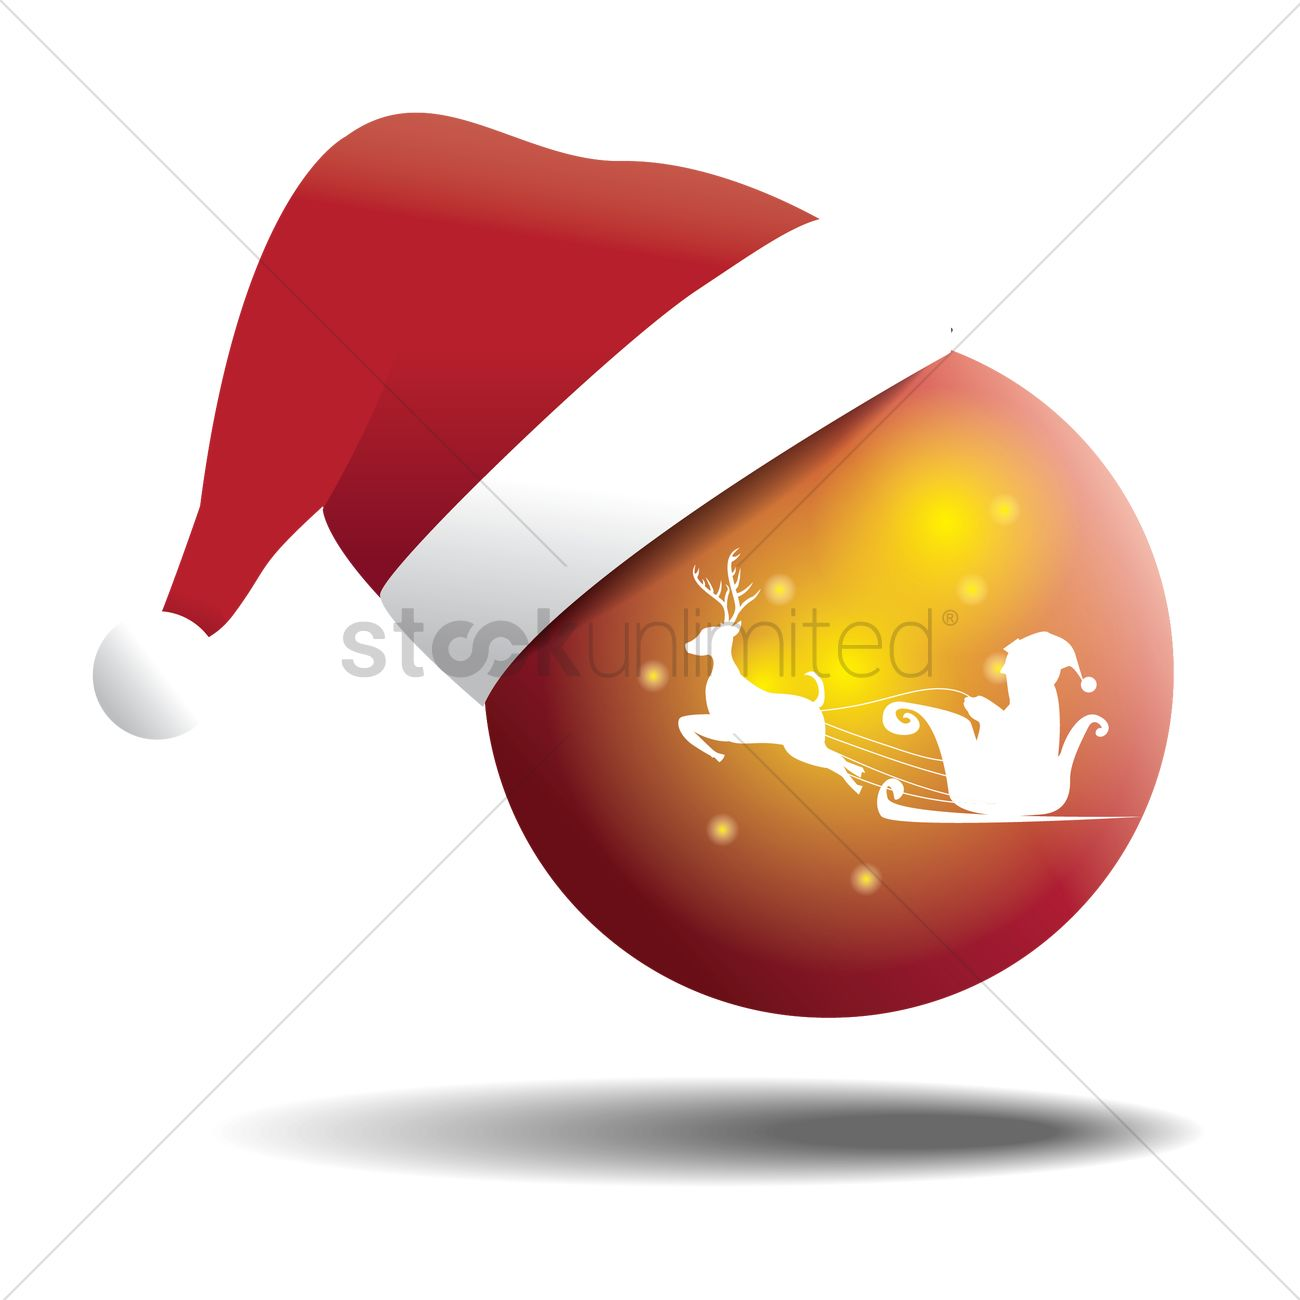 1300x1300 Reindeer And Santa Claus On Glass Ball With Santa Hat Vector Image